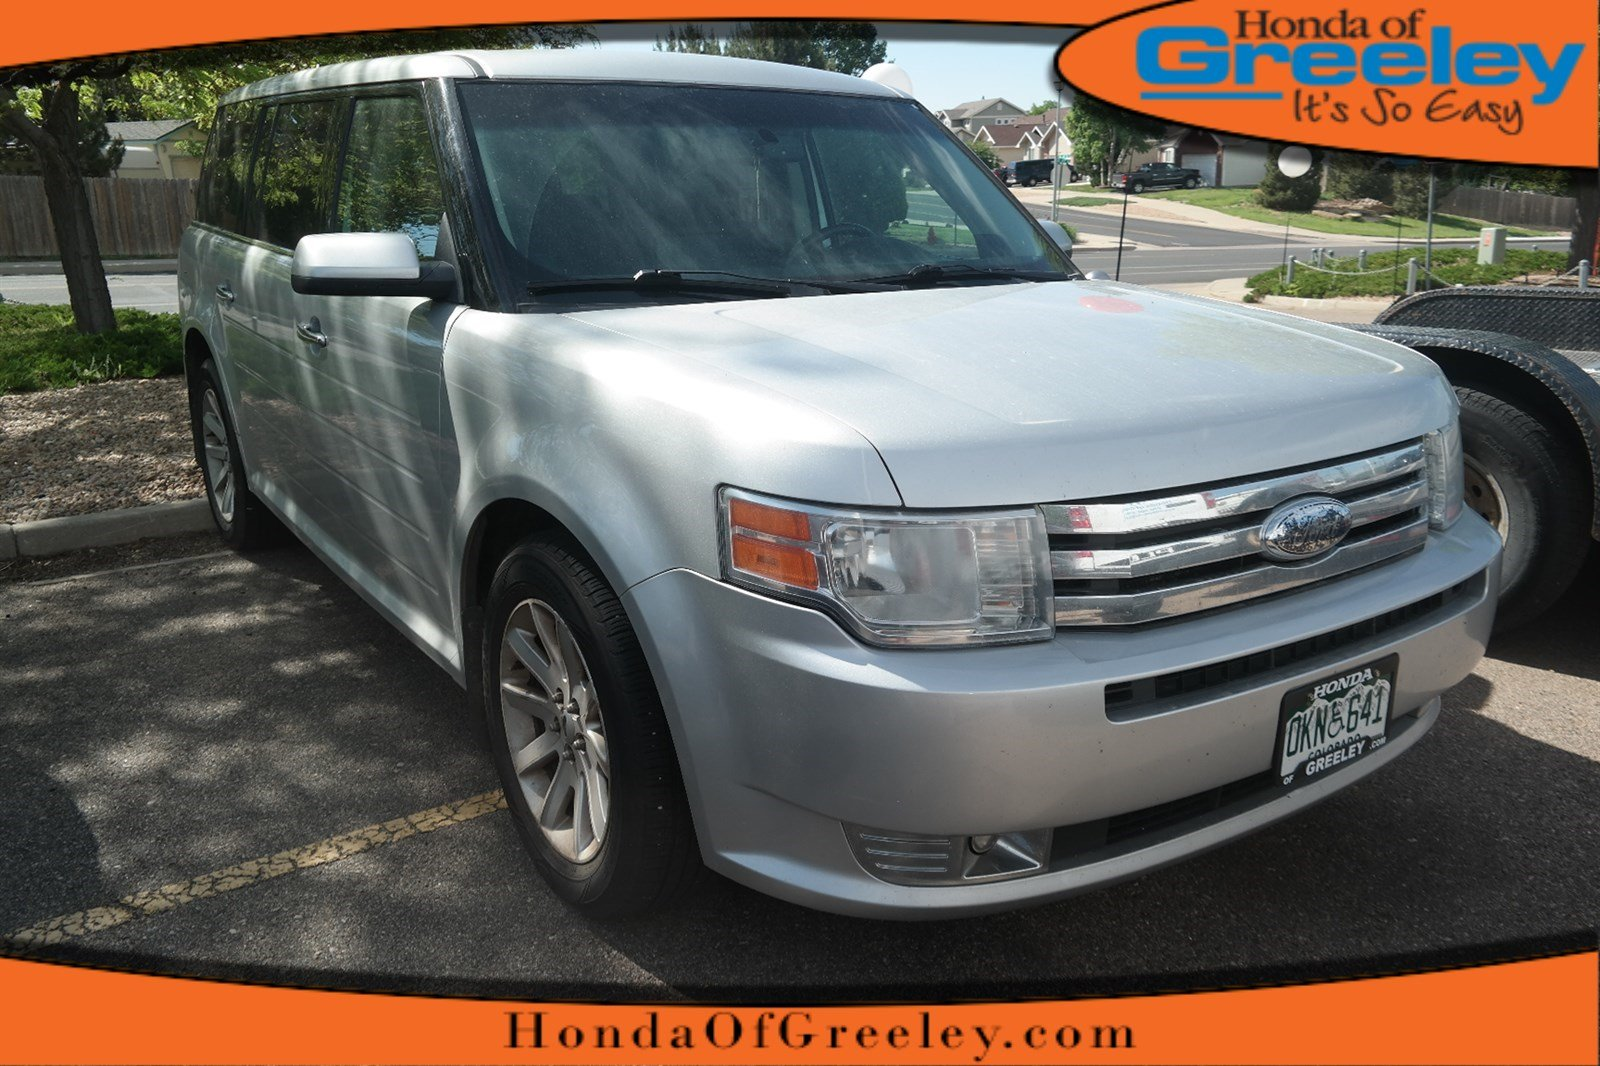 Photo Pre-Owned 2009 Ford Flex SEL All Wheel Drive Station Wagon For Sale in Greeley, Loveland, Windsor, Fort Collins, Longmont, Colorado